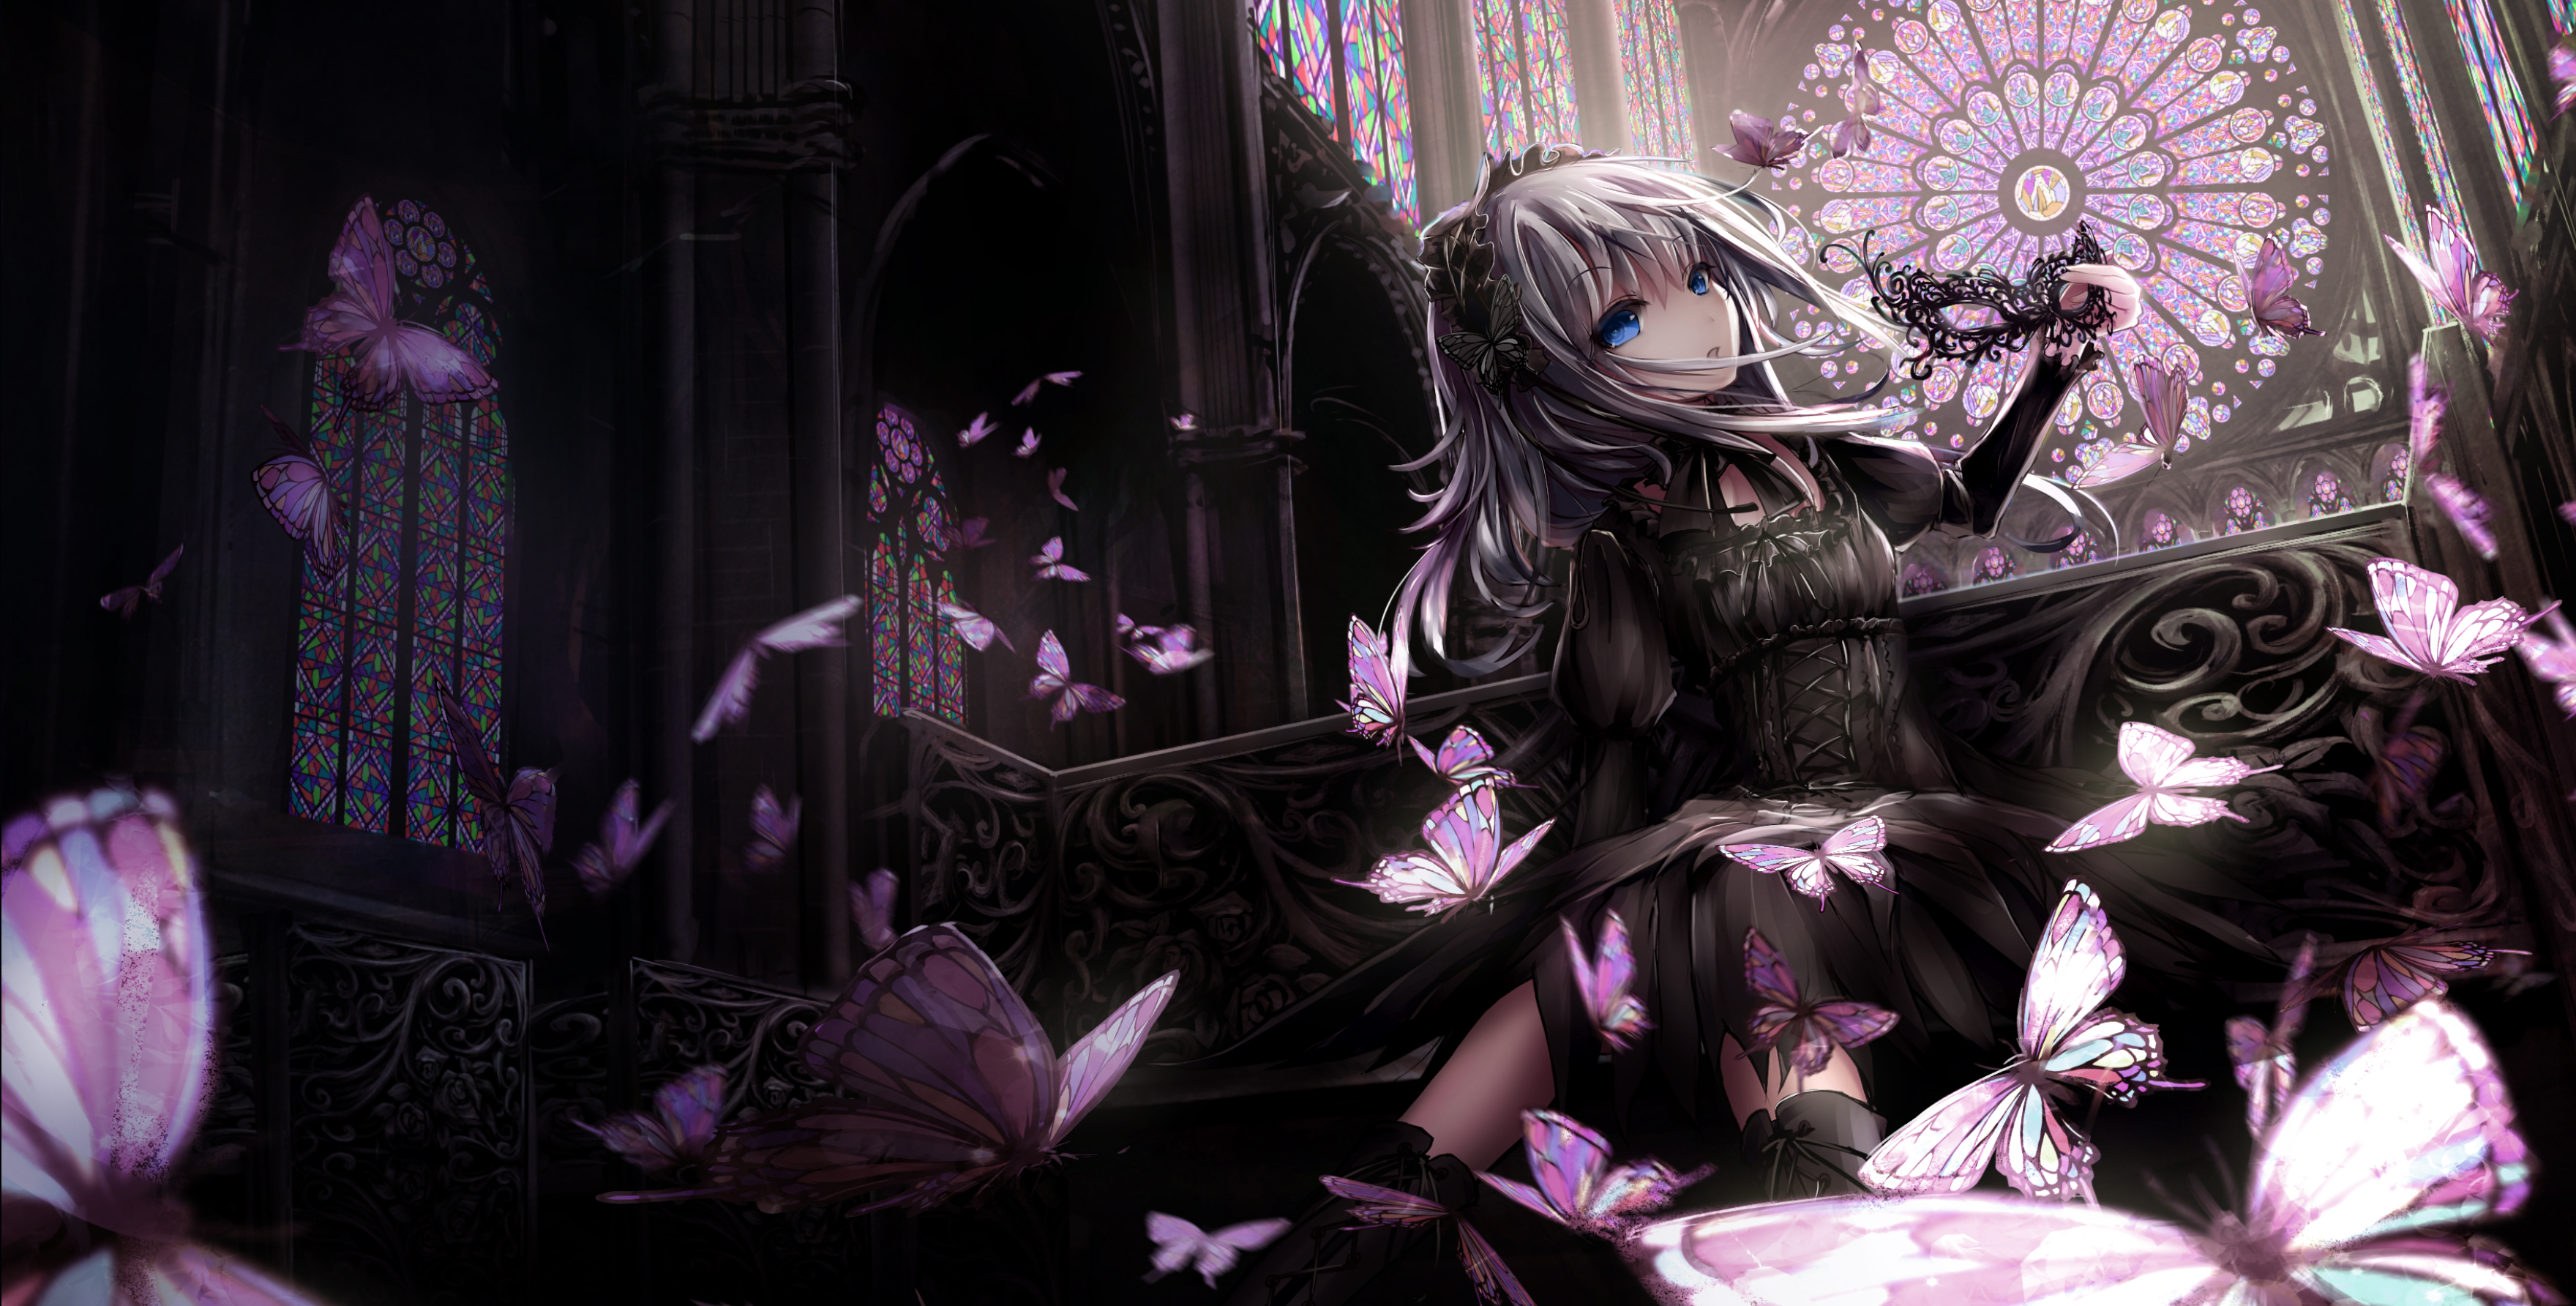 wallpaper of the week: gothic girl 5 | randomness thing